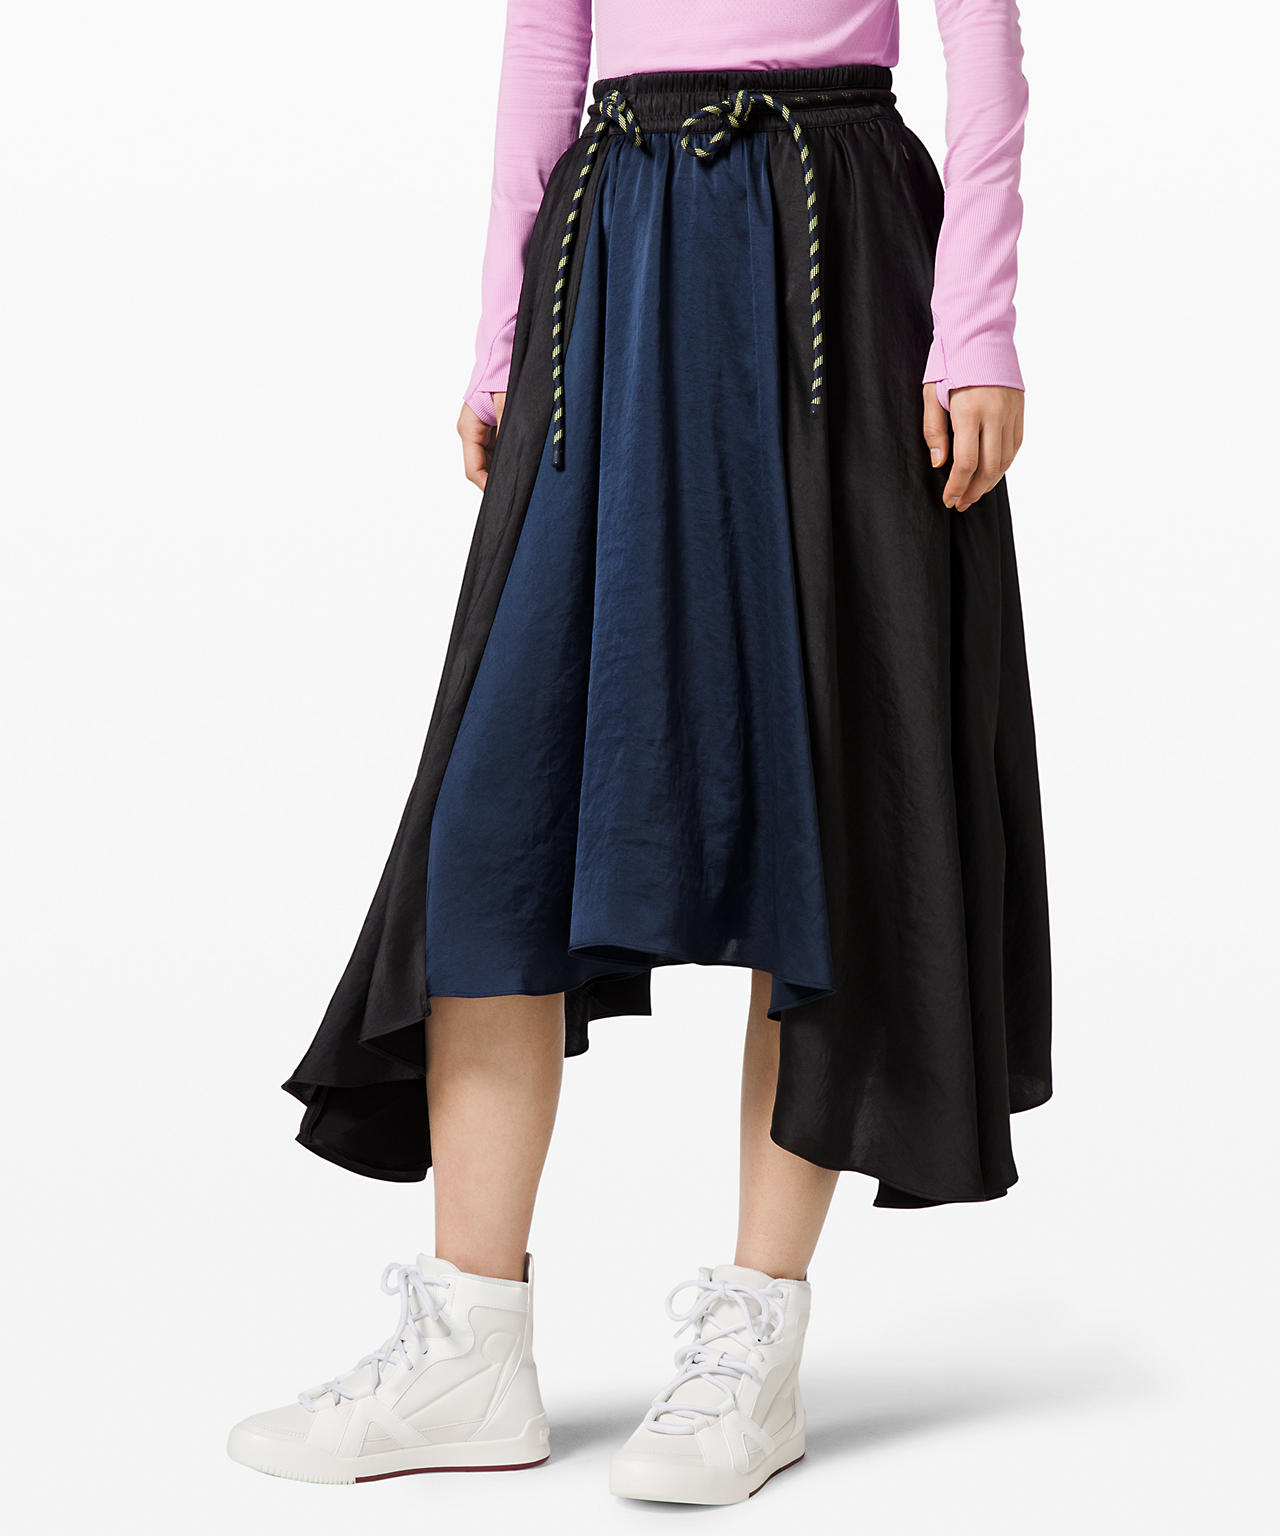 Face Forward Skirt  lululemon x Roksanda